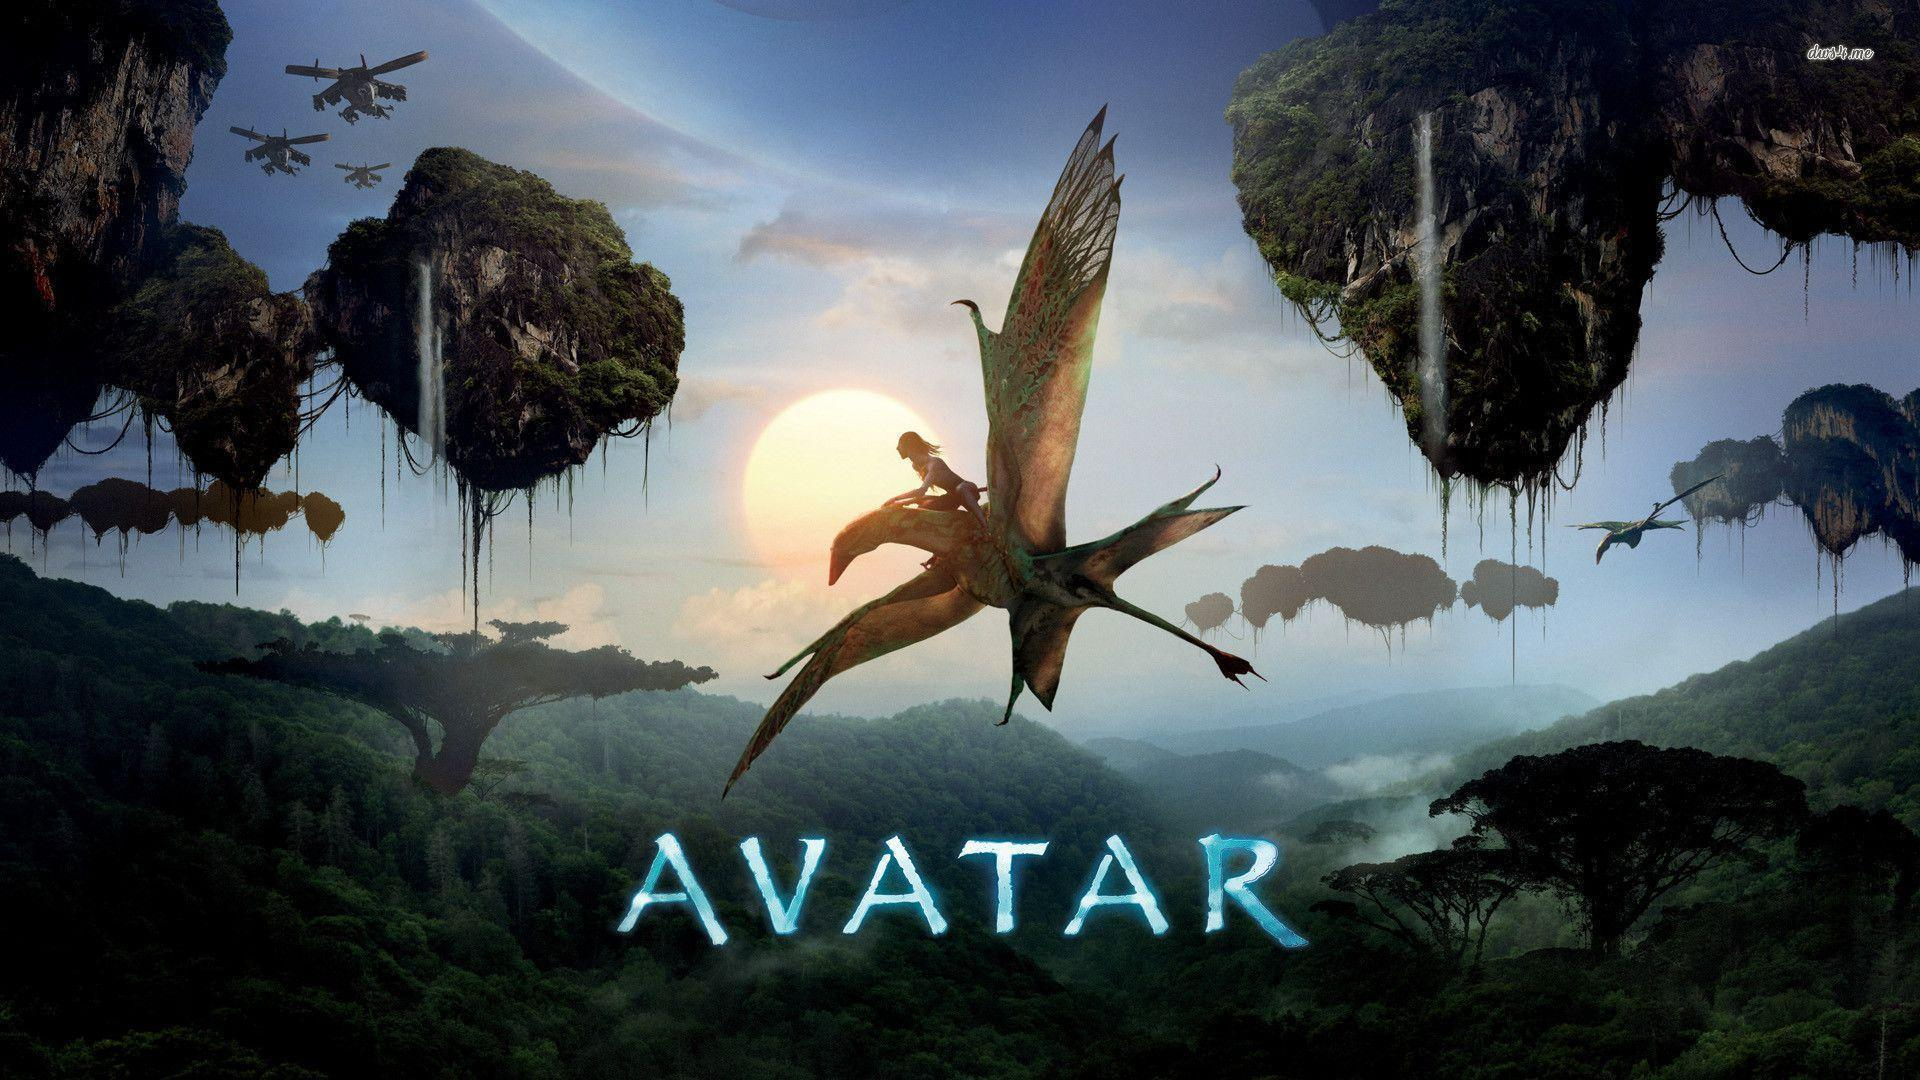 Free Hd Movie Download Point Avatar 2009 Free Hd Movie: Avatar Wallpapers